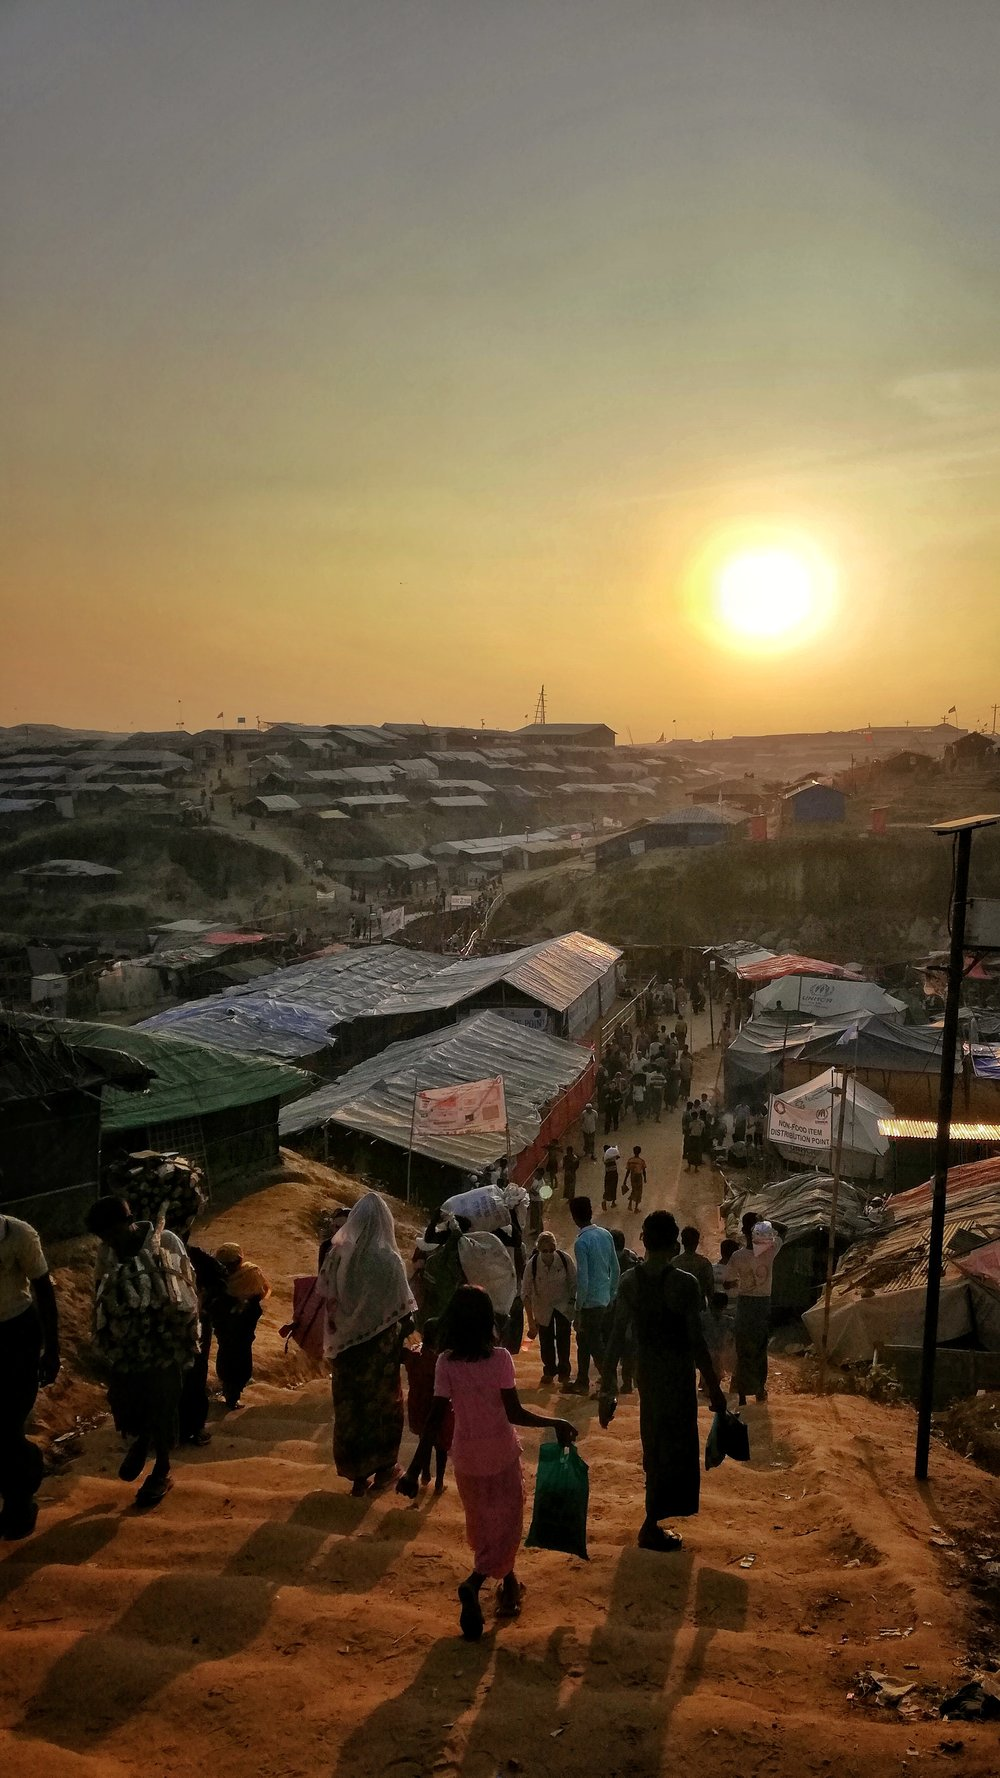 Bangladesh, walking toward a setting sun - settlement, 2018.jpeg